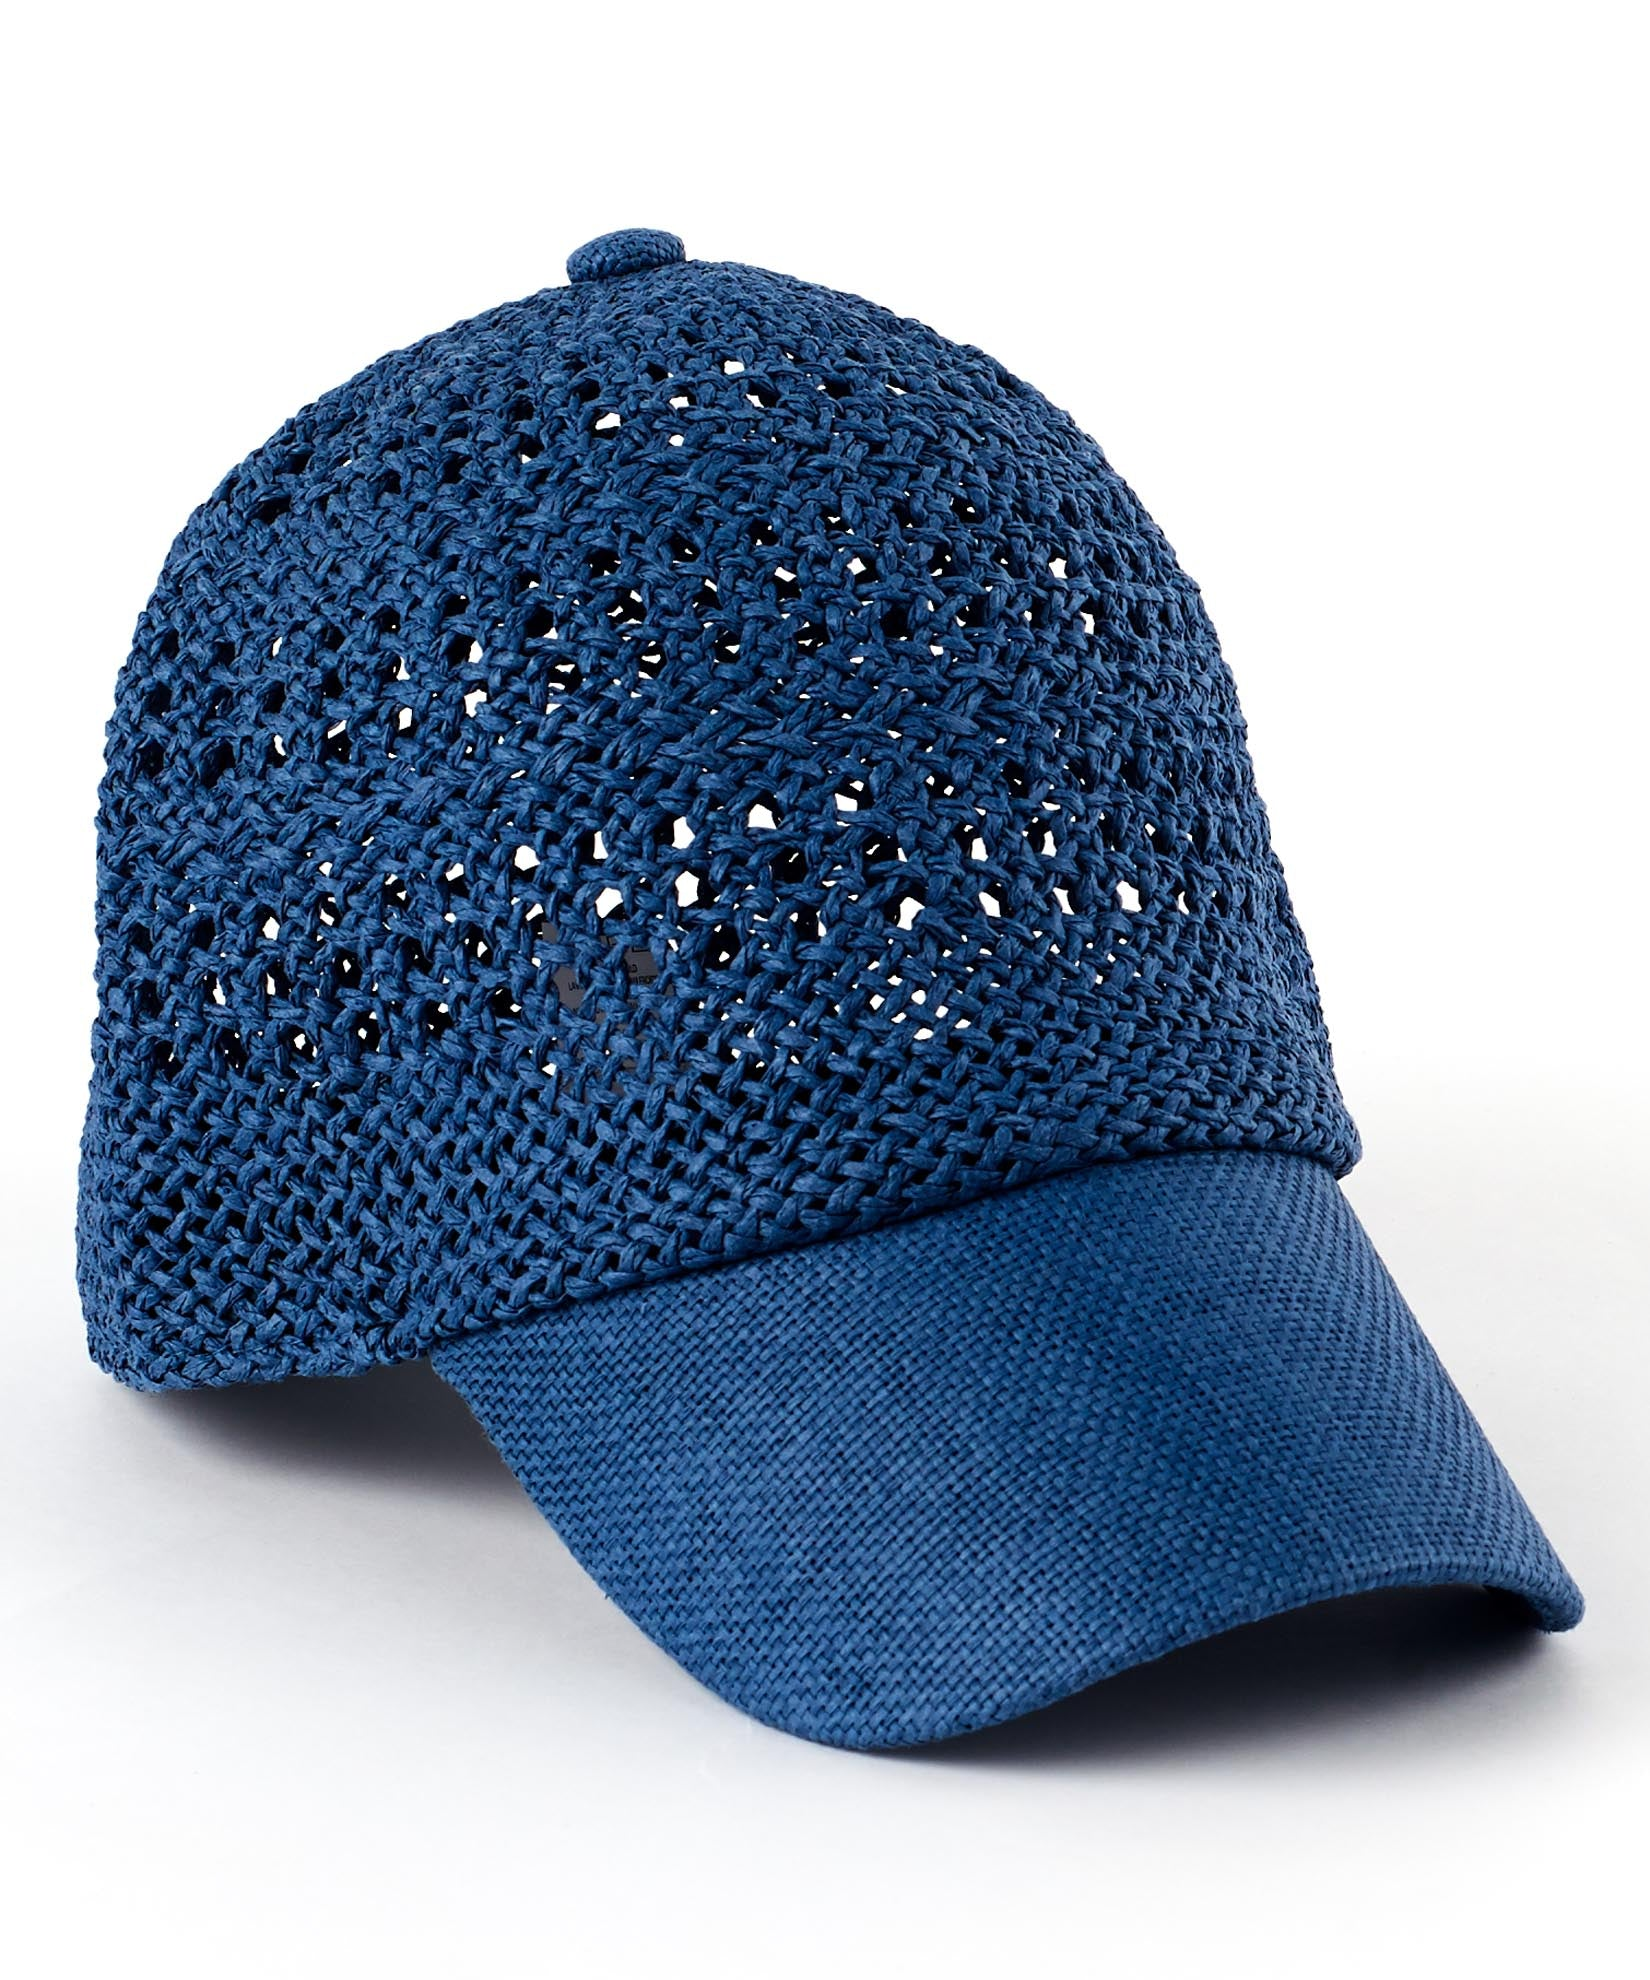 Navy - Lilly Packable Baseball Cap